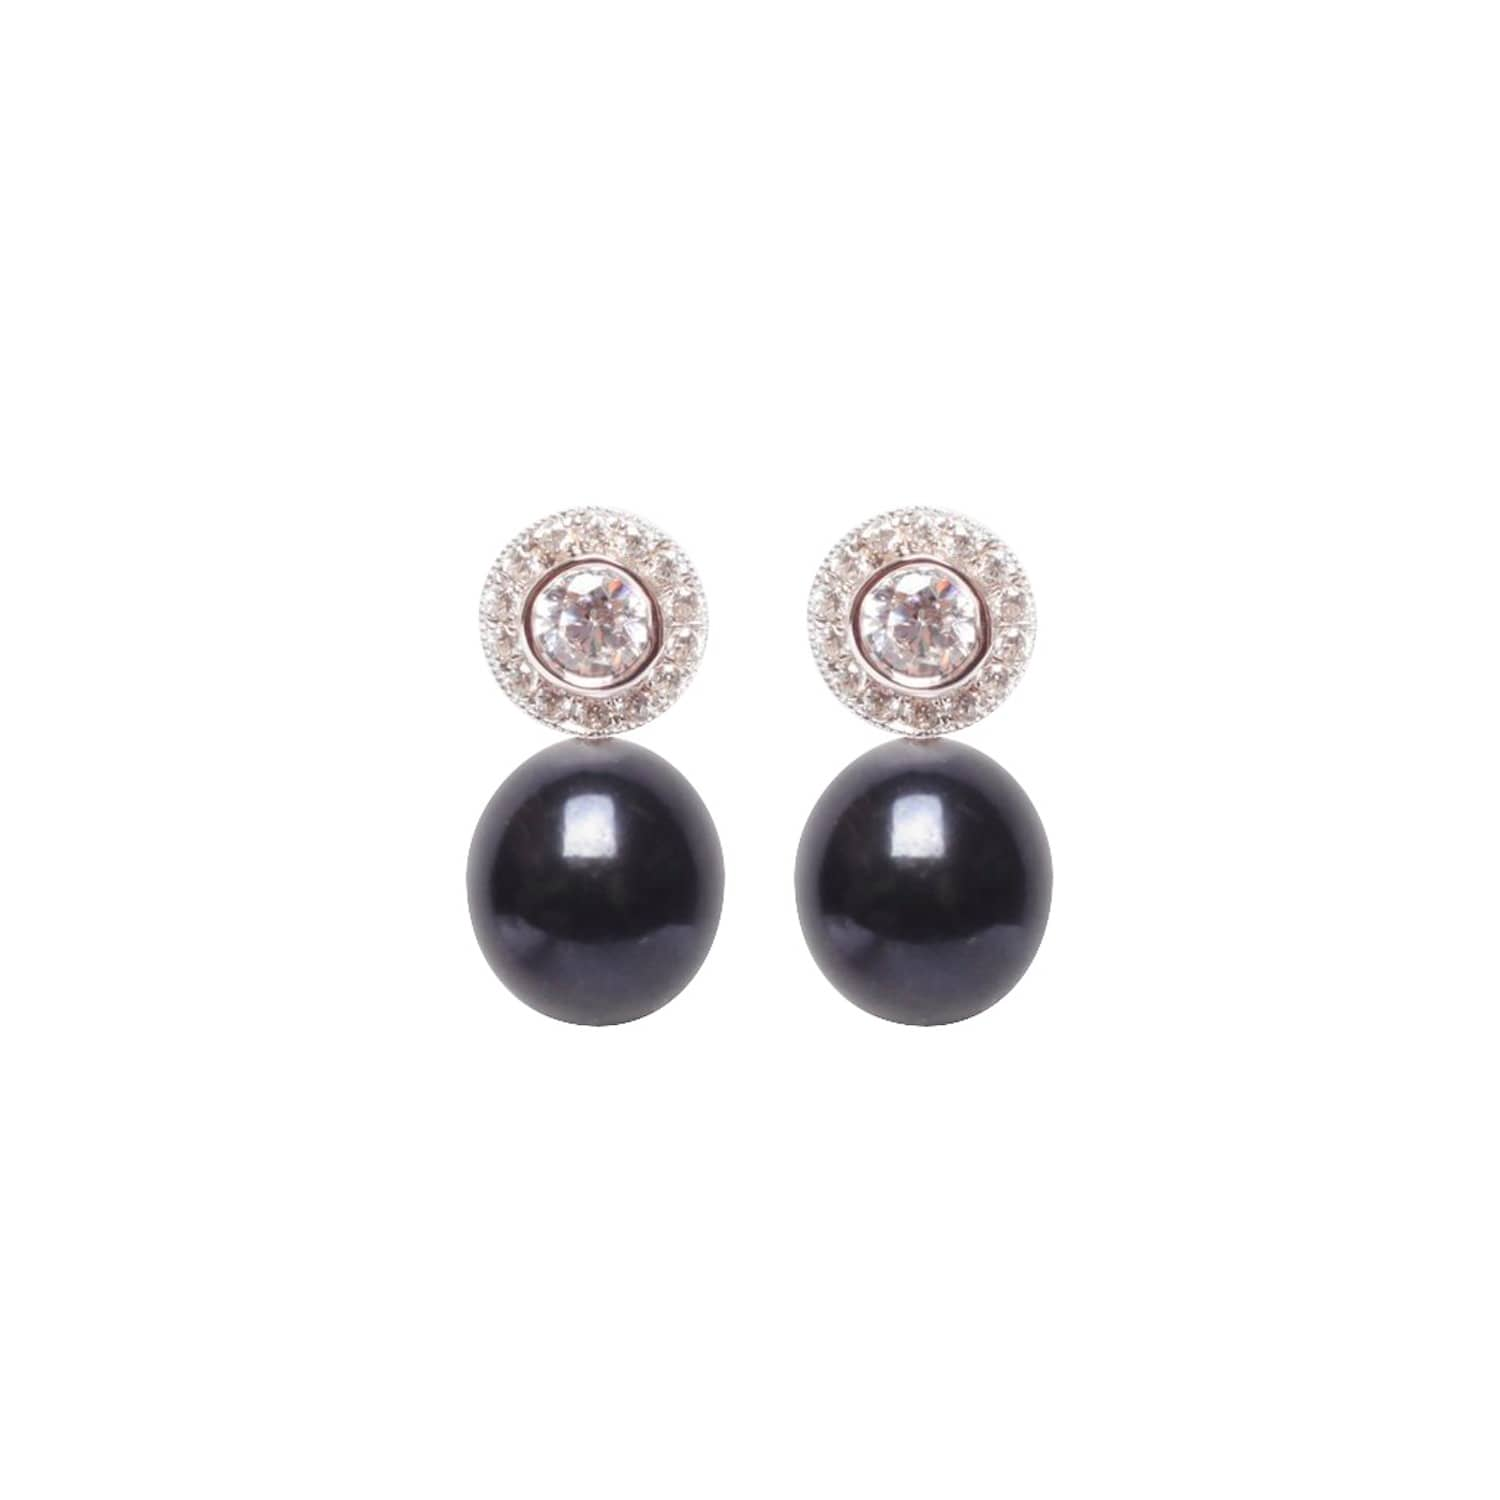 pearls ora black us halo earrings badger image round pearl cz wolf brilliant